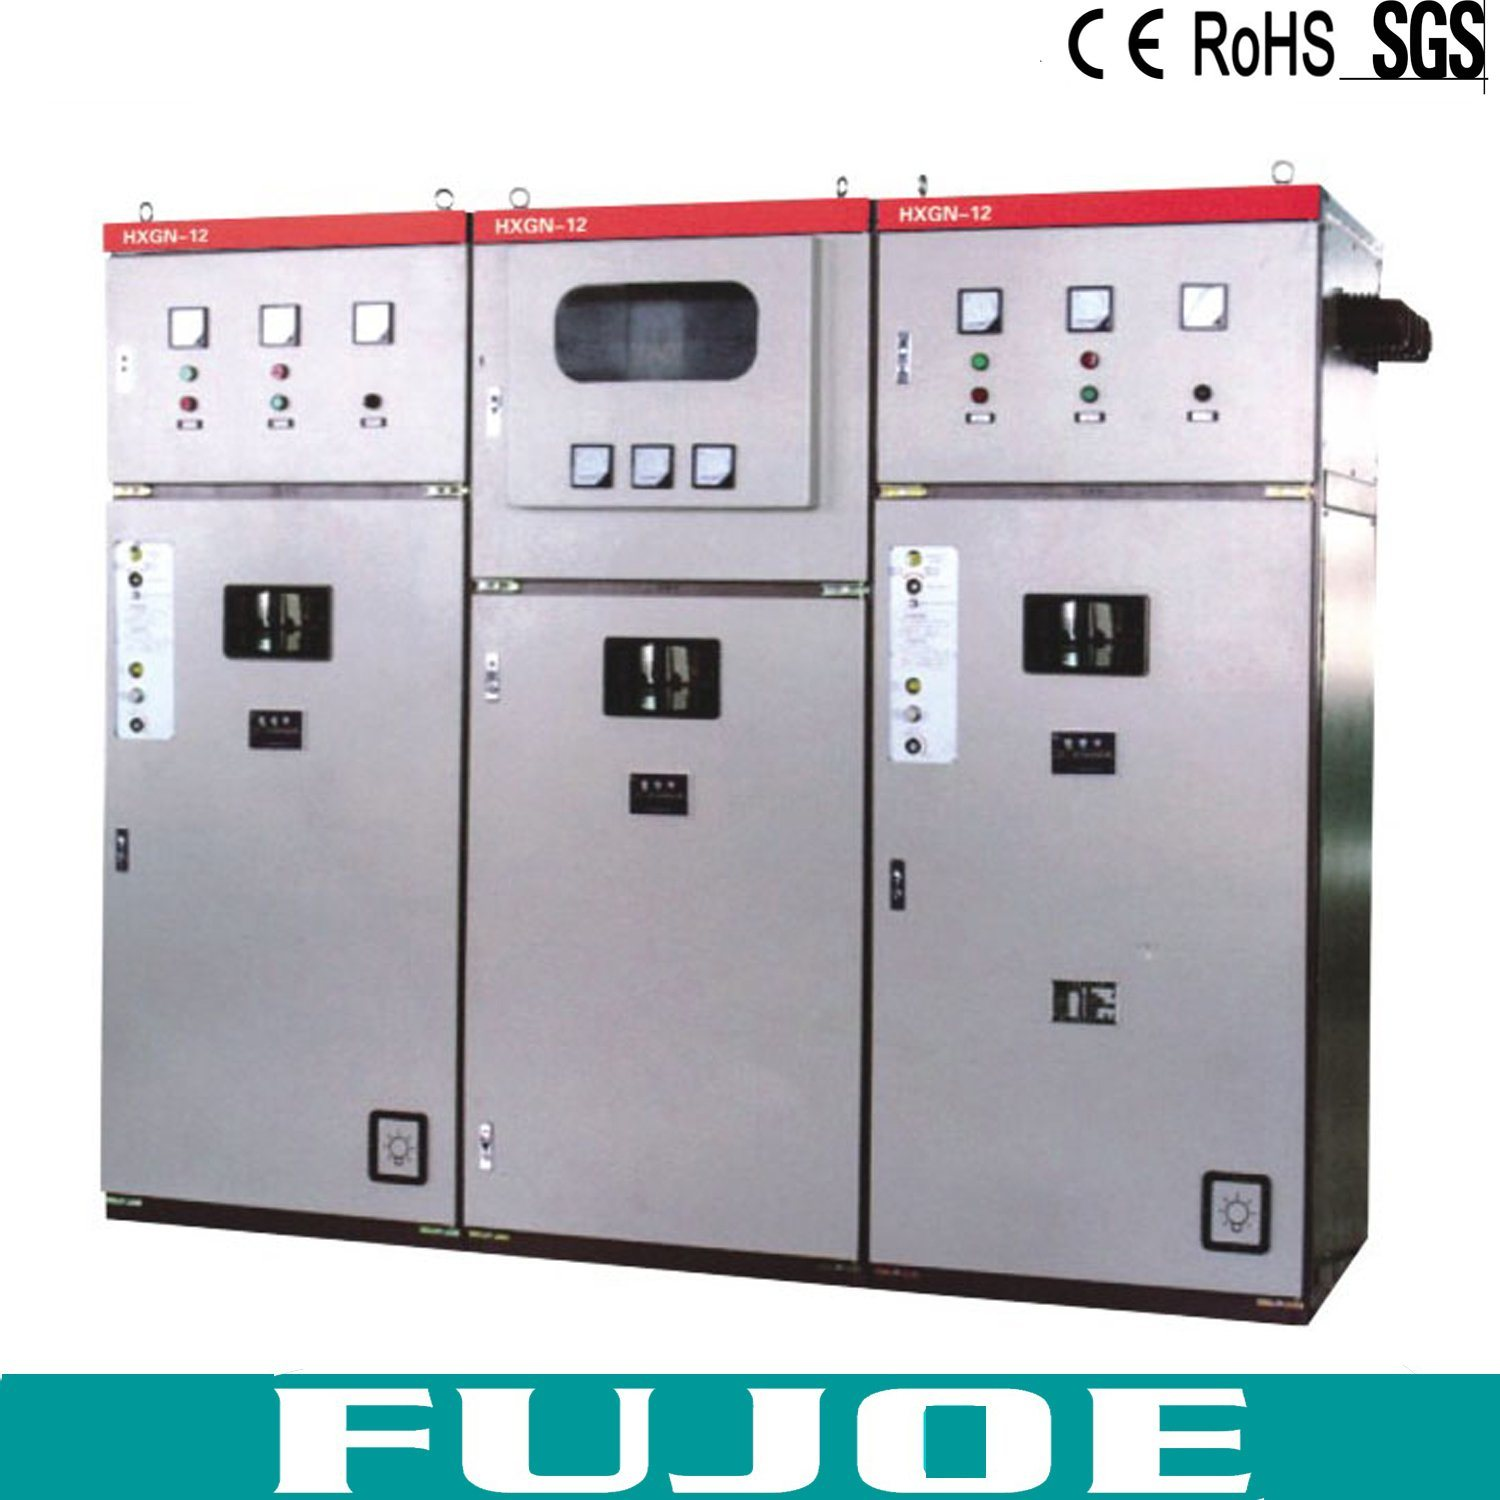 China switchgears power distribution distribution cabinet china switchgears power distribution distribution cabinet supplier zhejiang fujoe ele co ltd sciox Images